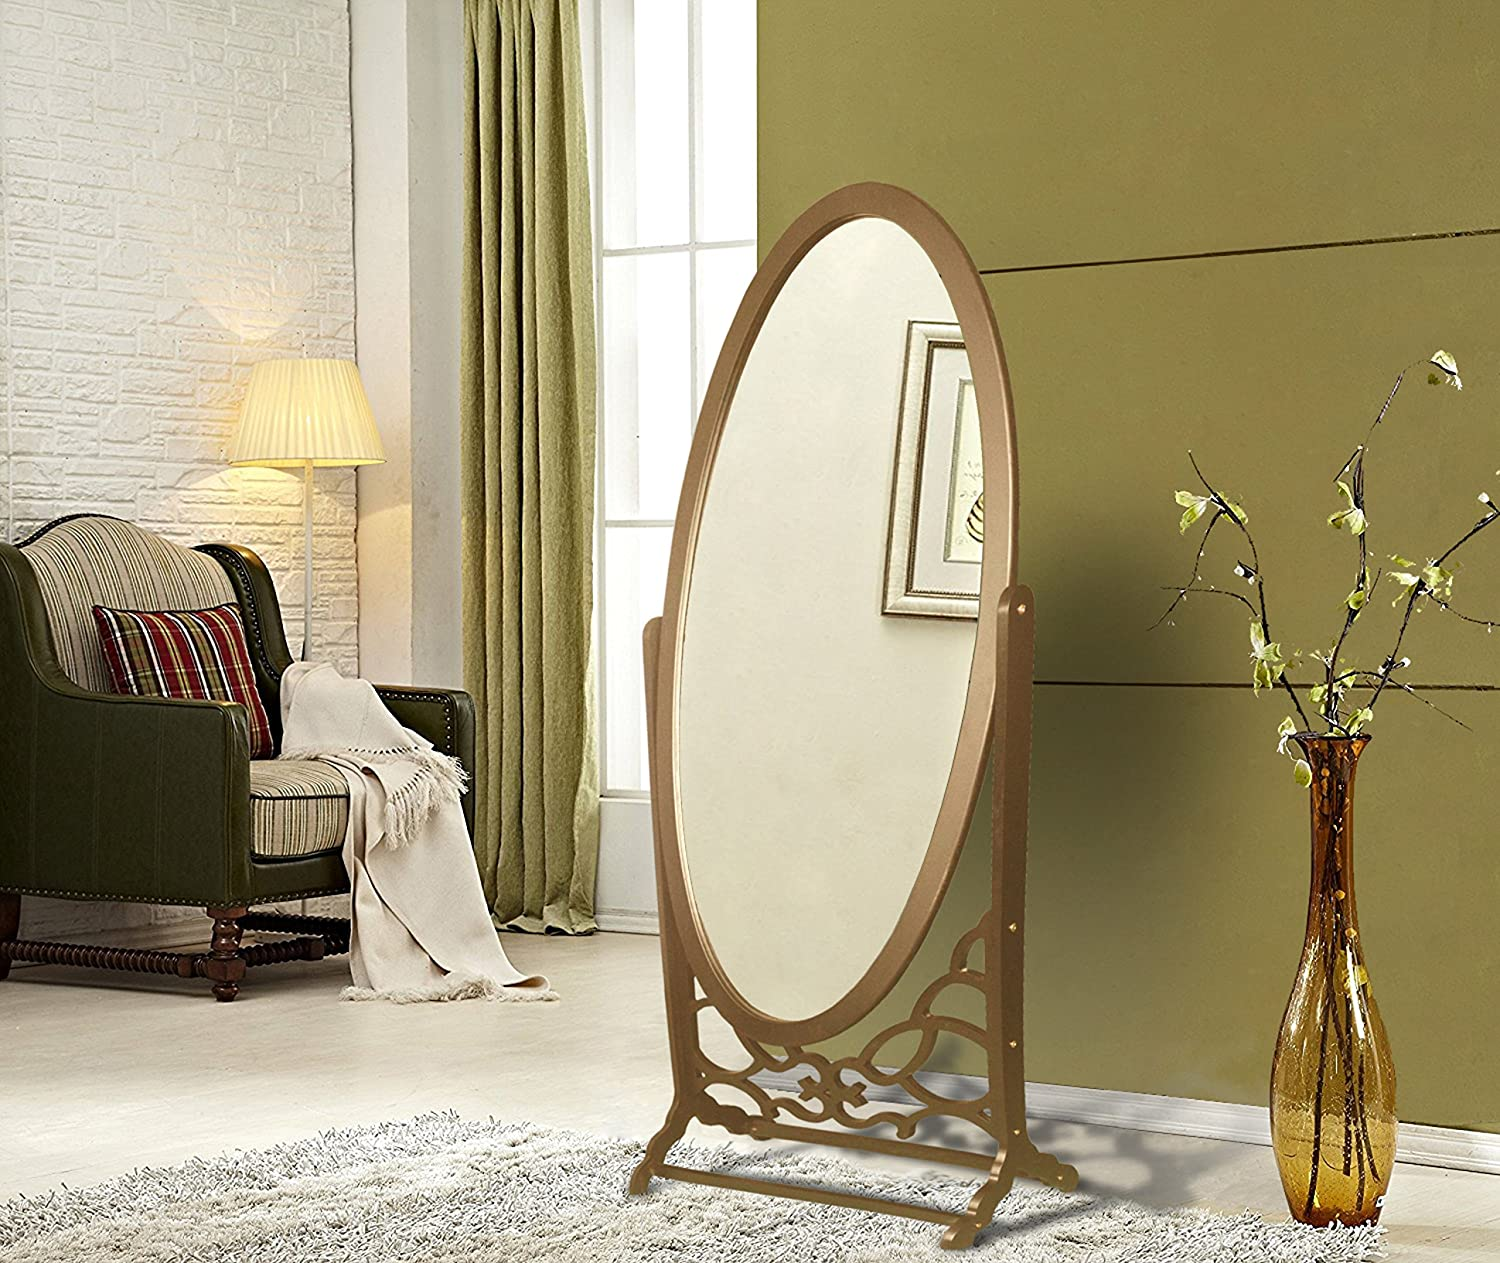 Iconic Home Bowery Mirror Modern Free Standing Spindle Accent Legs Floor Mirror, gold